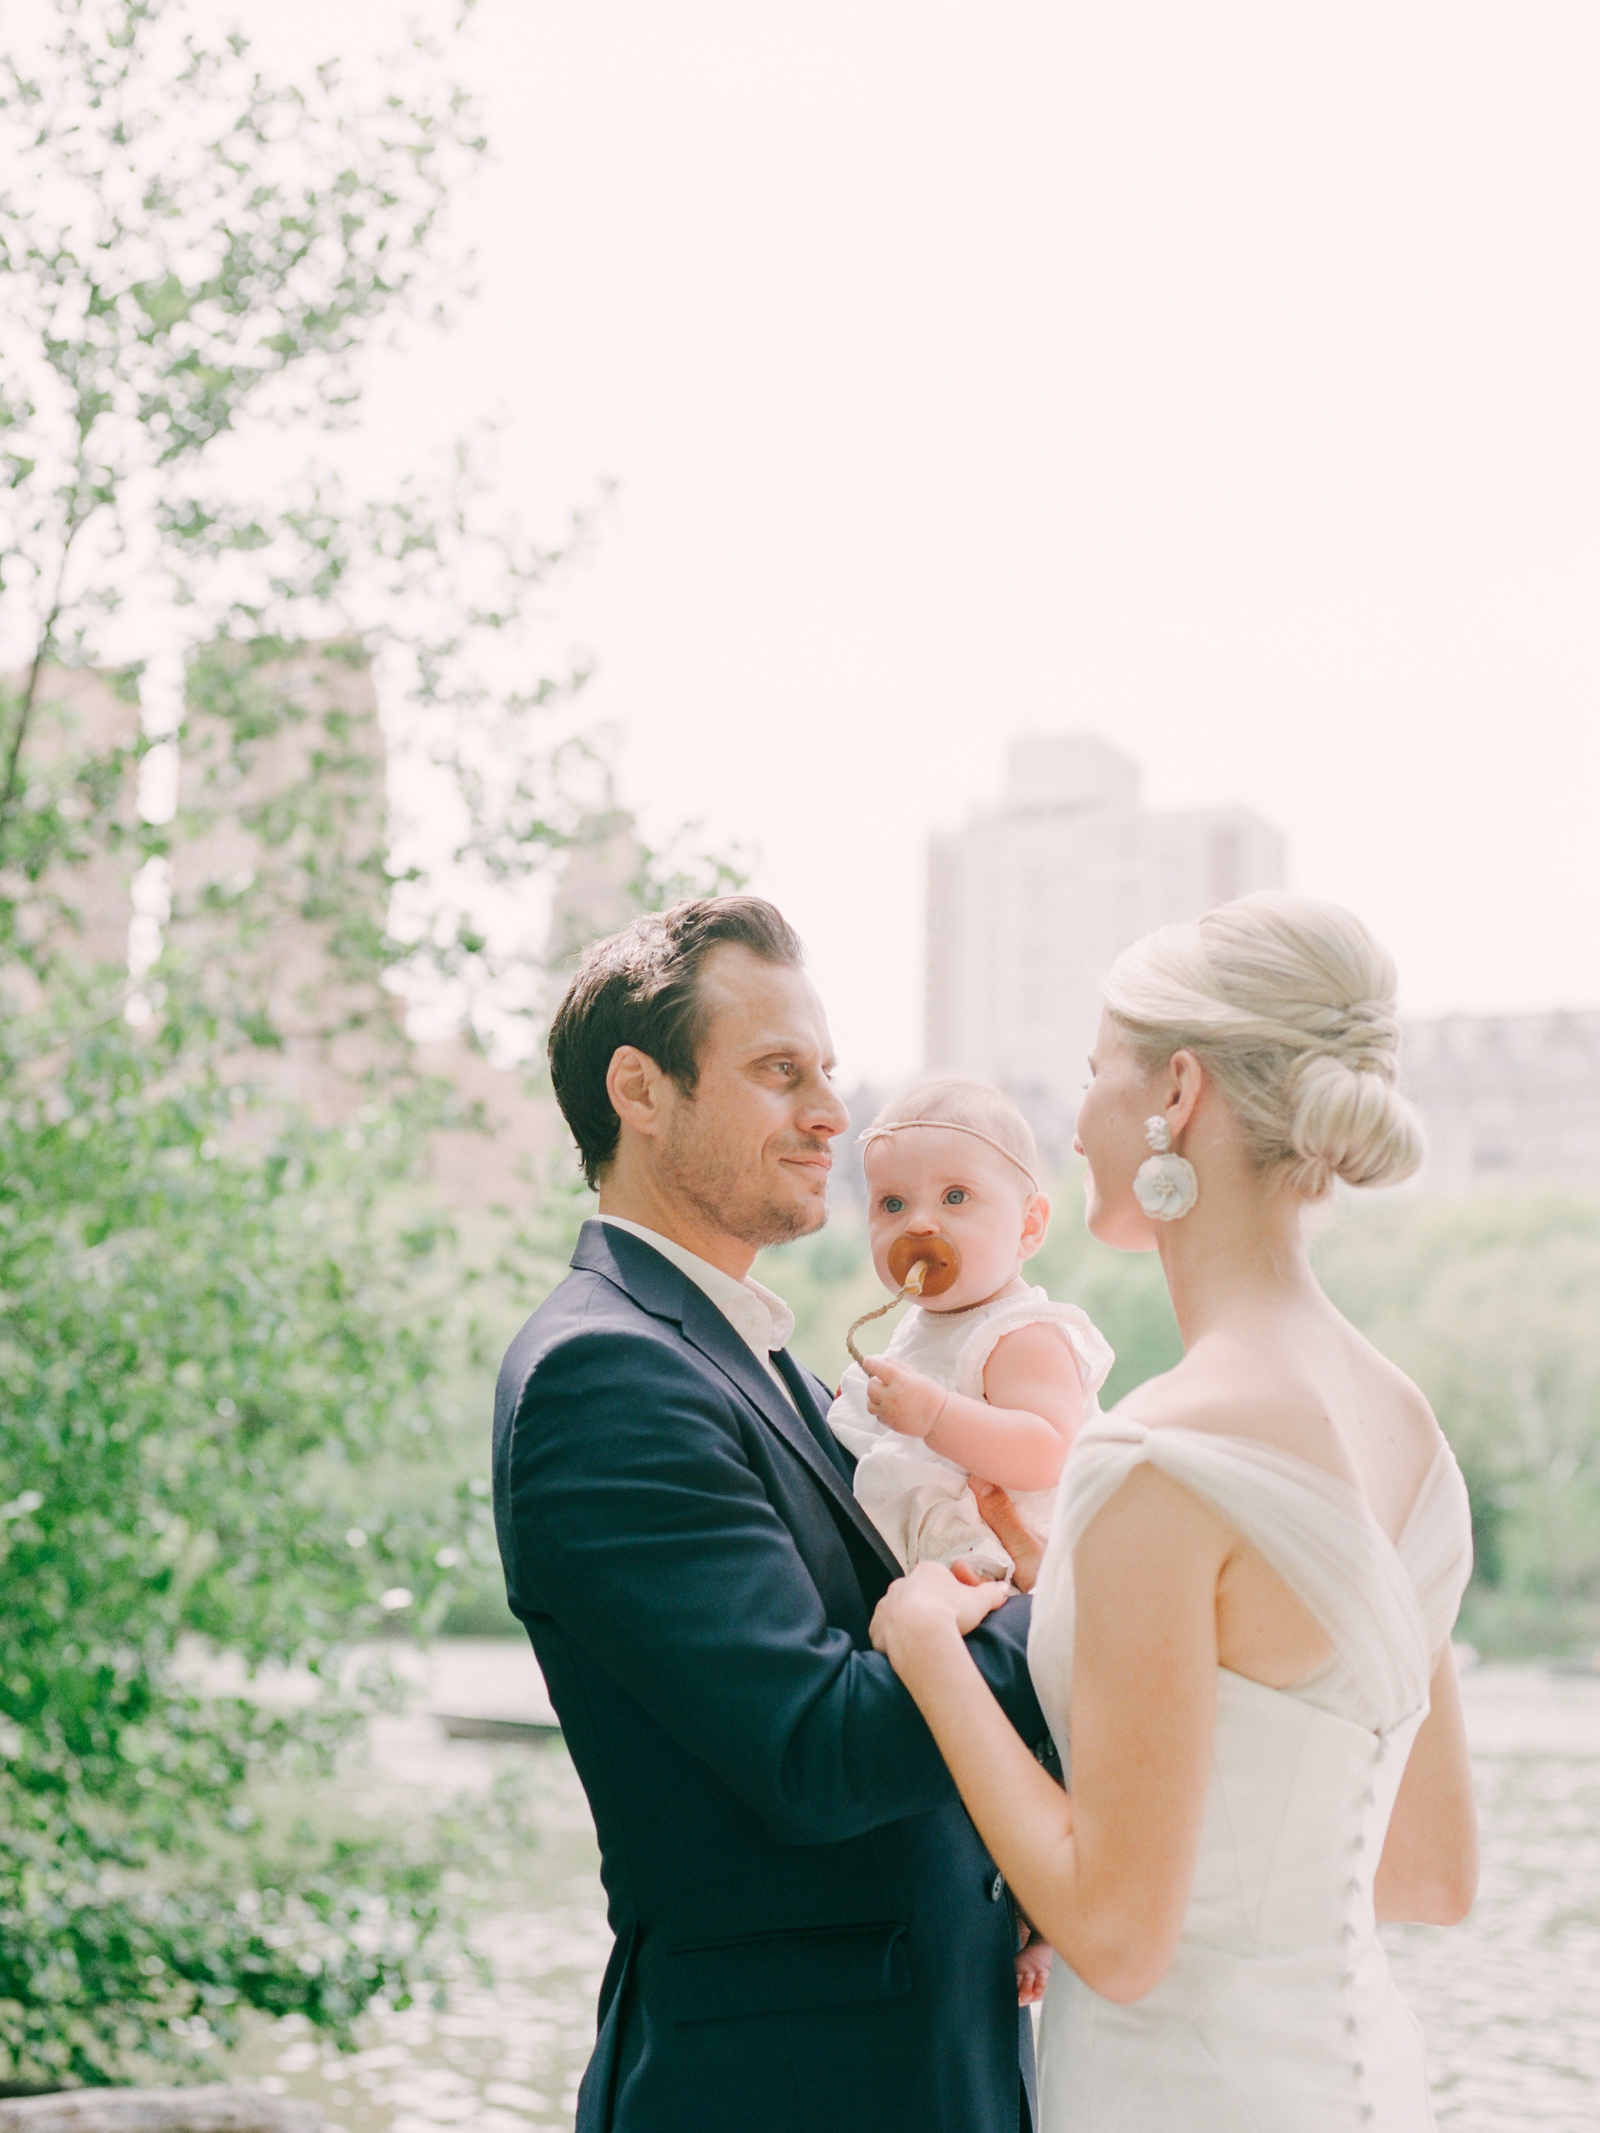 Intimate-NYC_wedding_ by Tanya Isaeva-99.jpg